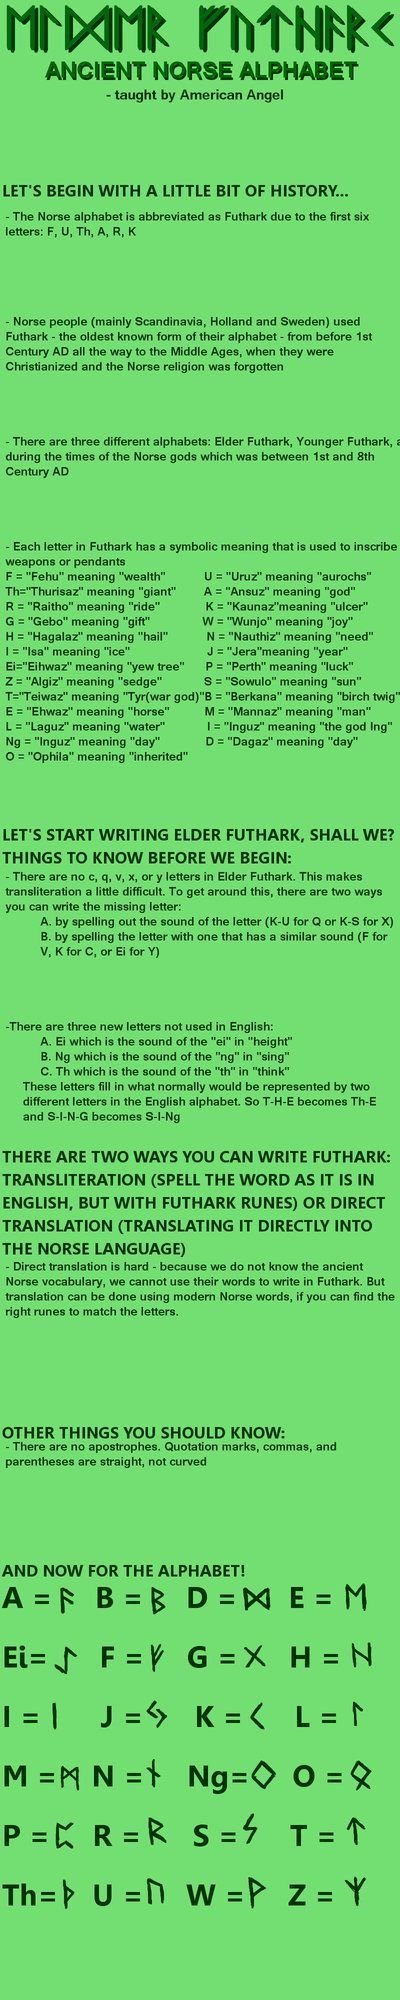 The Norse Alphabet Explained by AmericanAngel117 on deviantART GAH! This will be so useful!